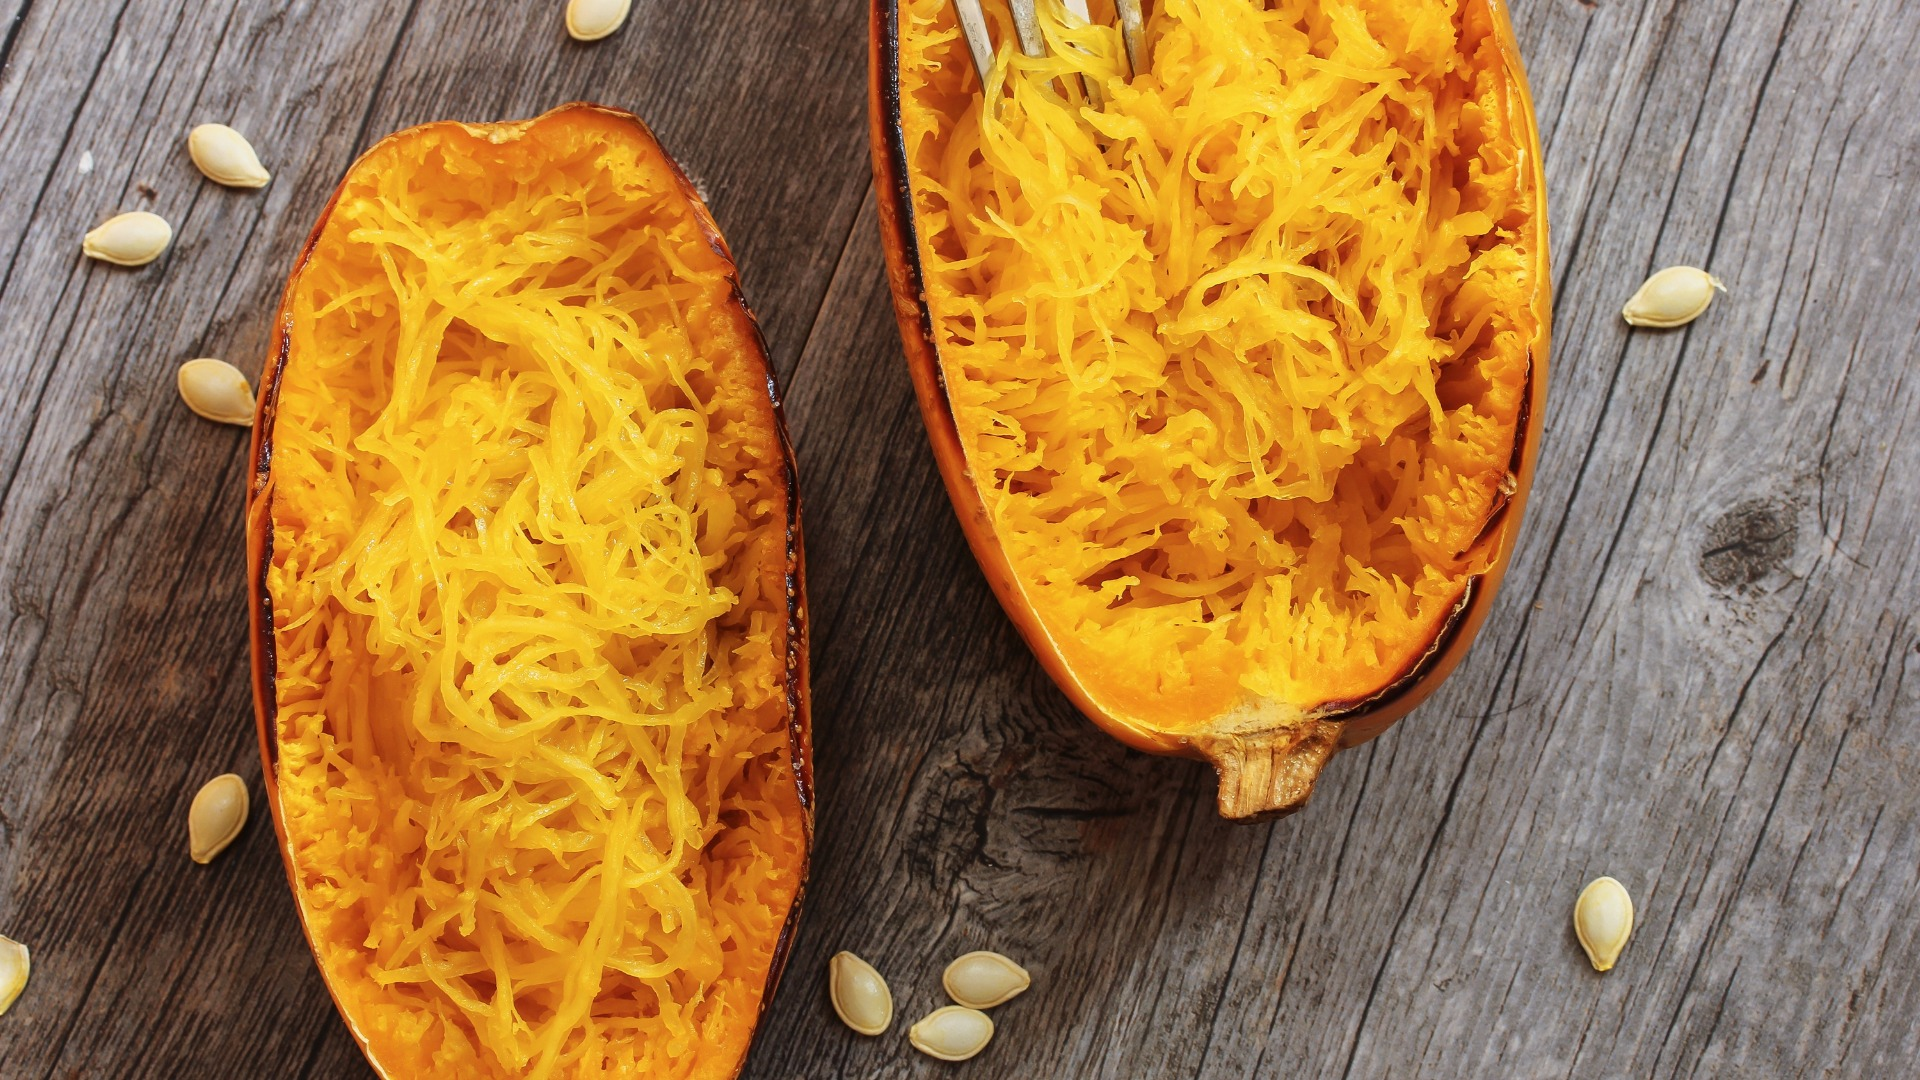 spaghetti squash on a wood table